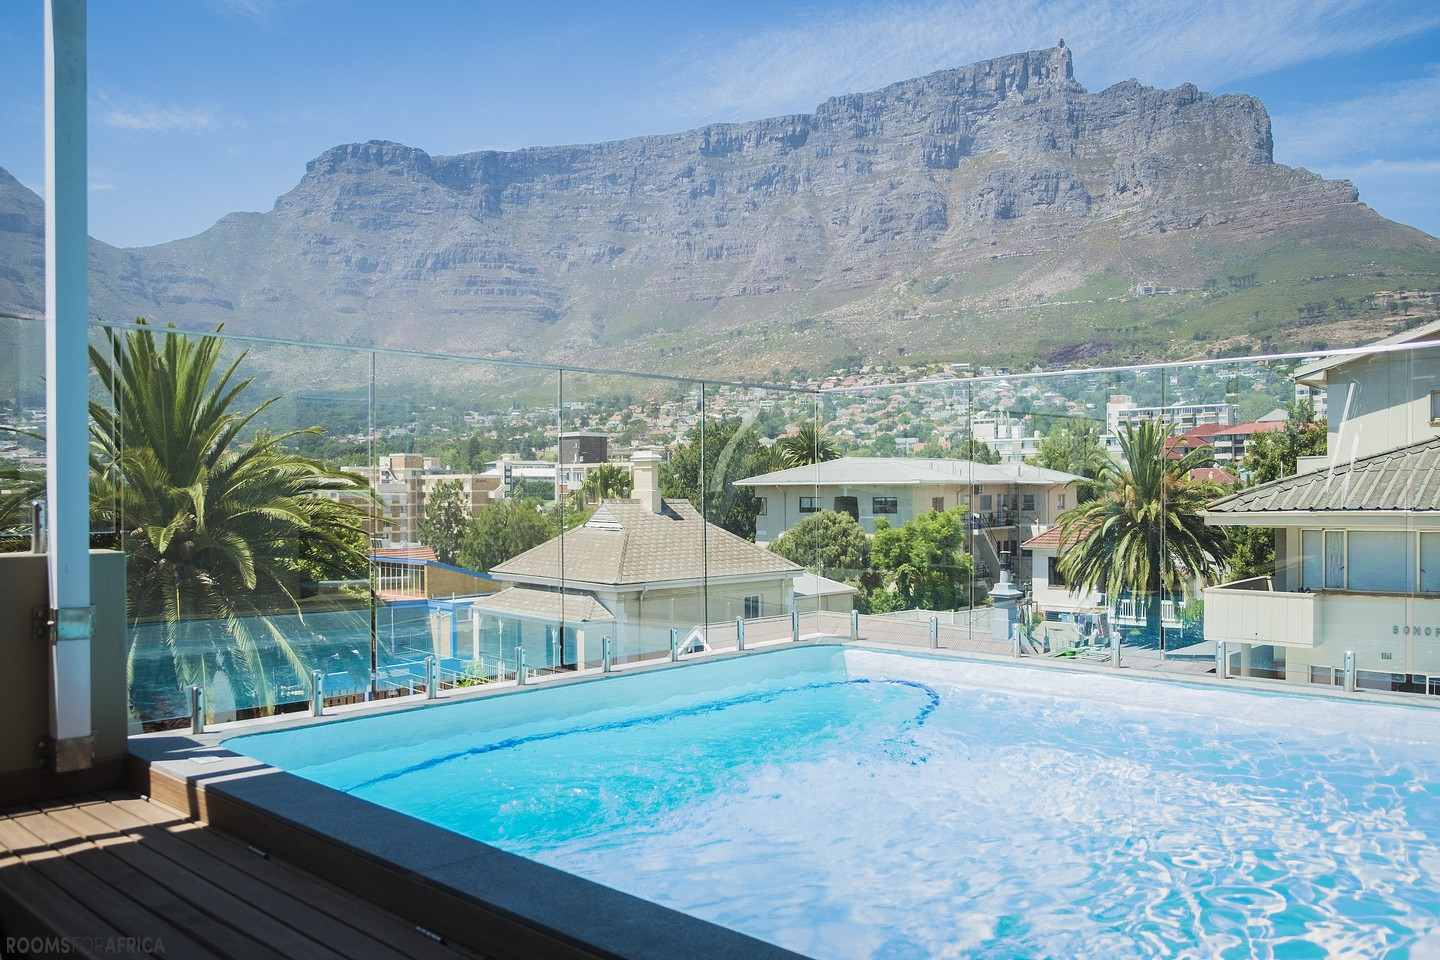 Cloud9 boutique hotel spa cape town south africa for Boutique hotel spa